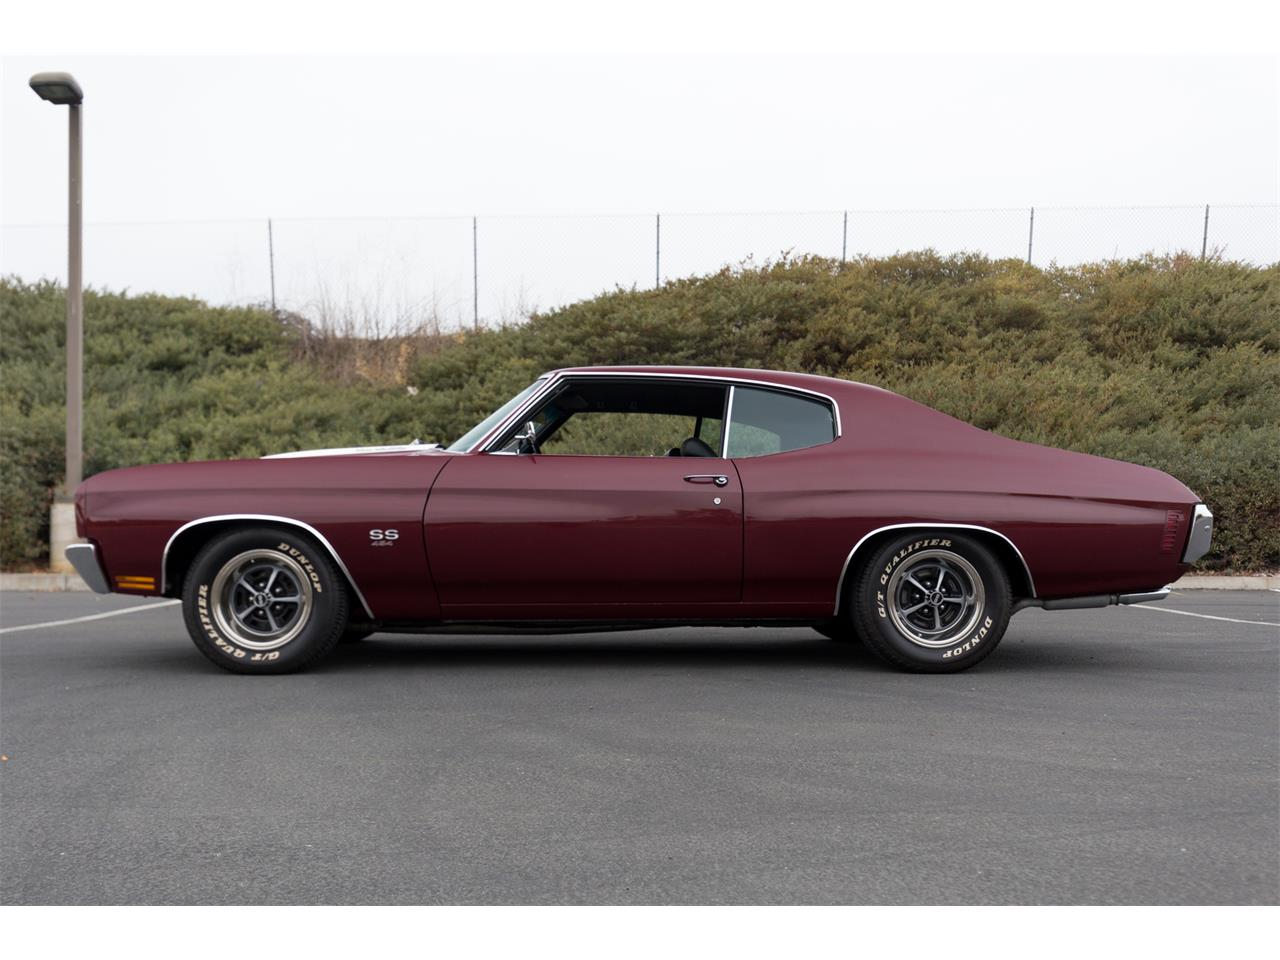 Large Picture of '70 Chevelle SS - $58,990.00 - MN2G